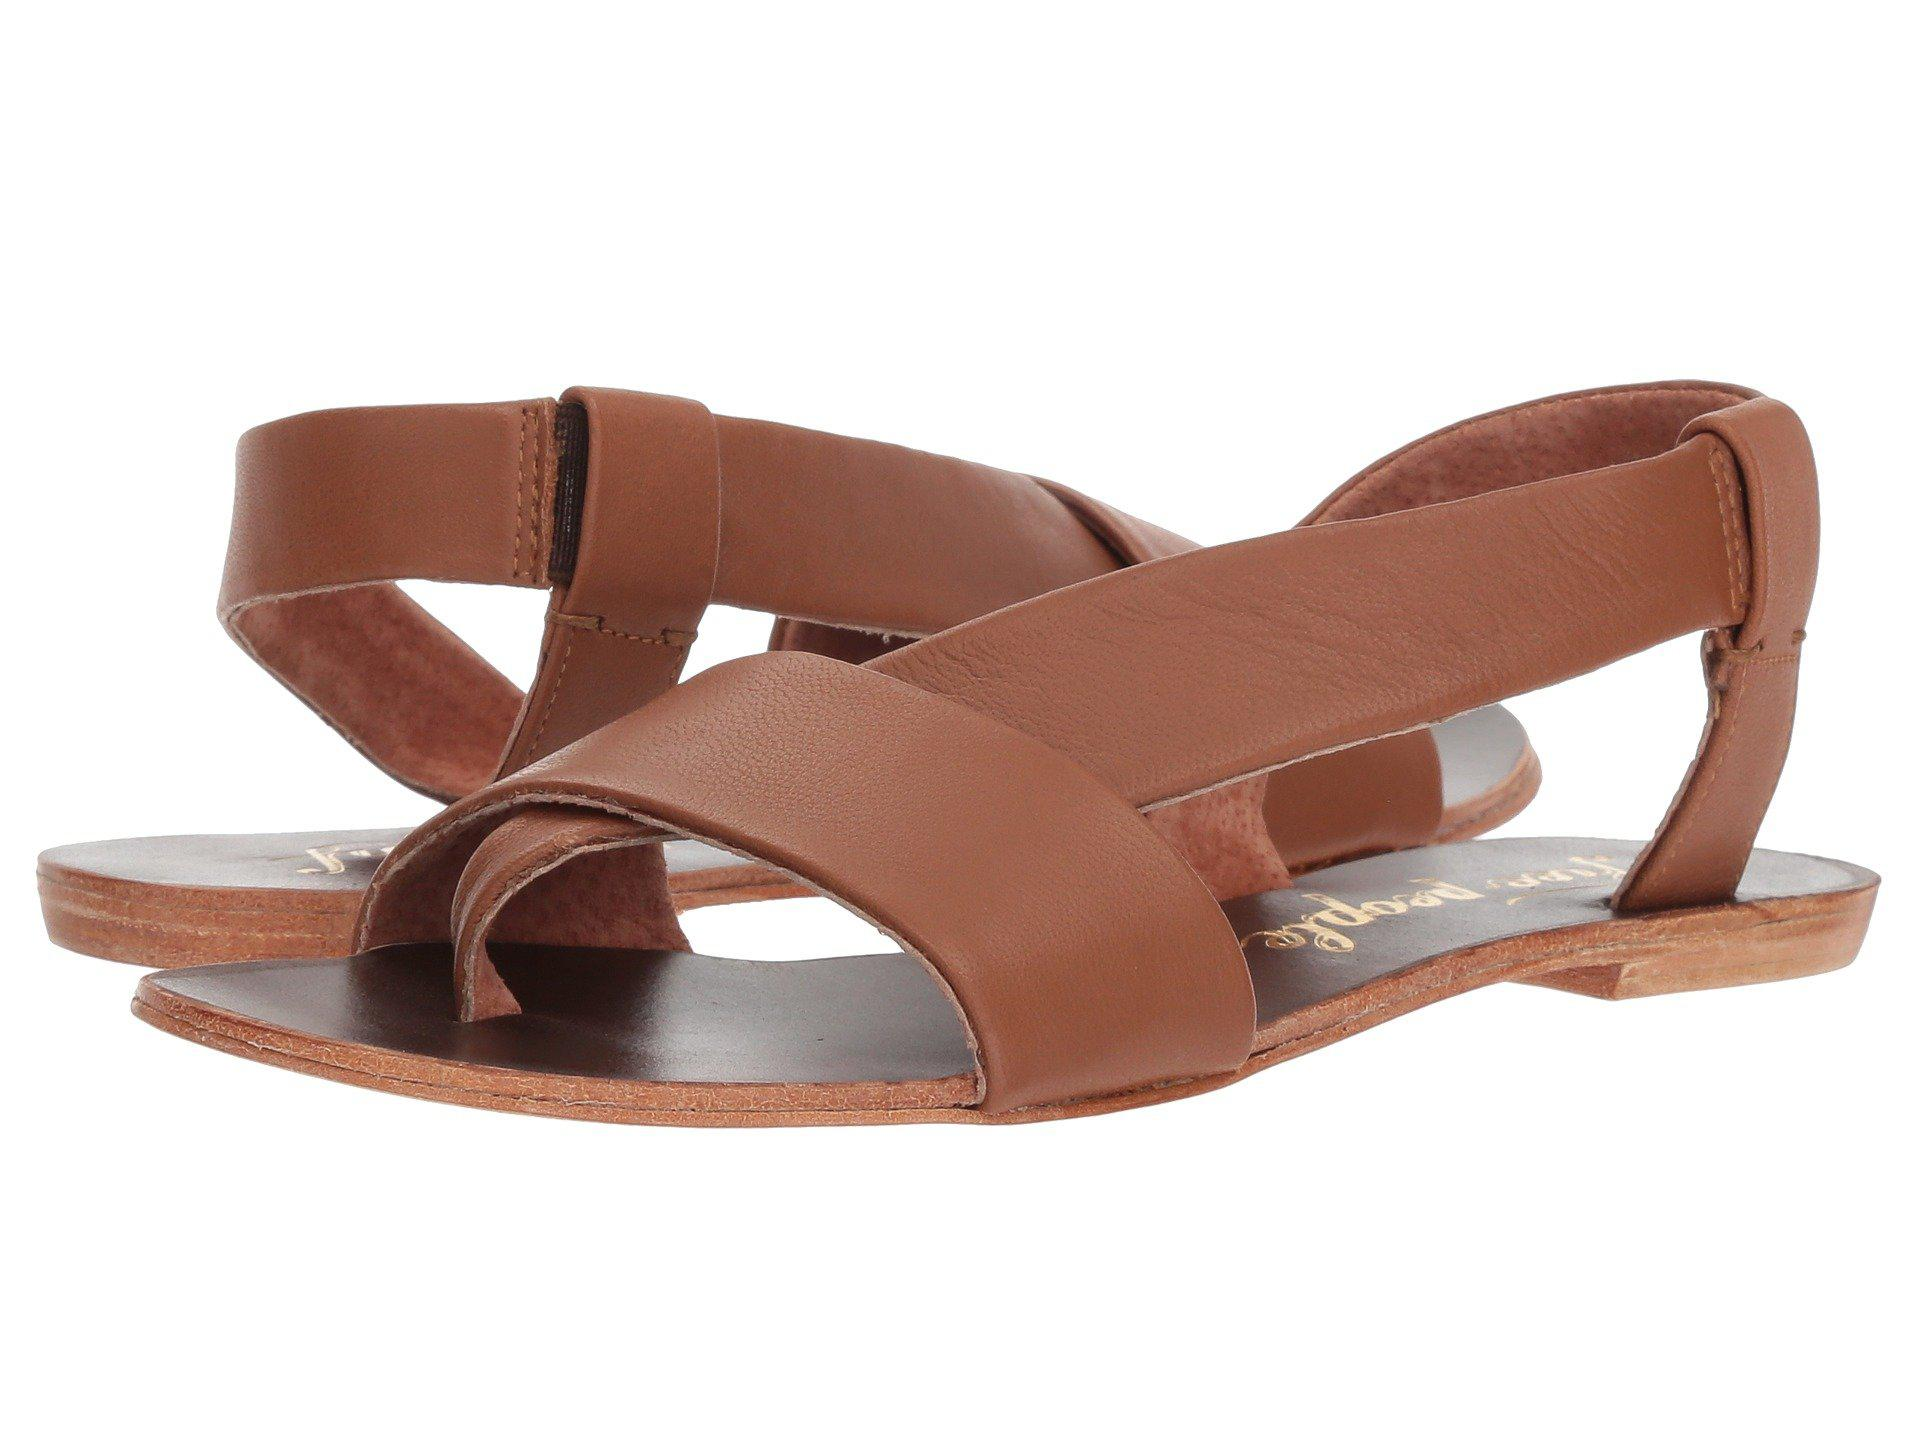 25bab6a009e Lyst - Free People Under Wraps Sandal in Brown - Save 19%